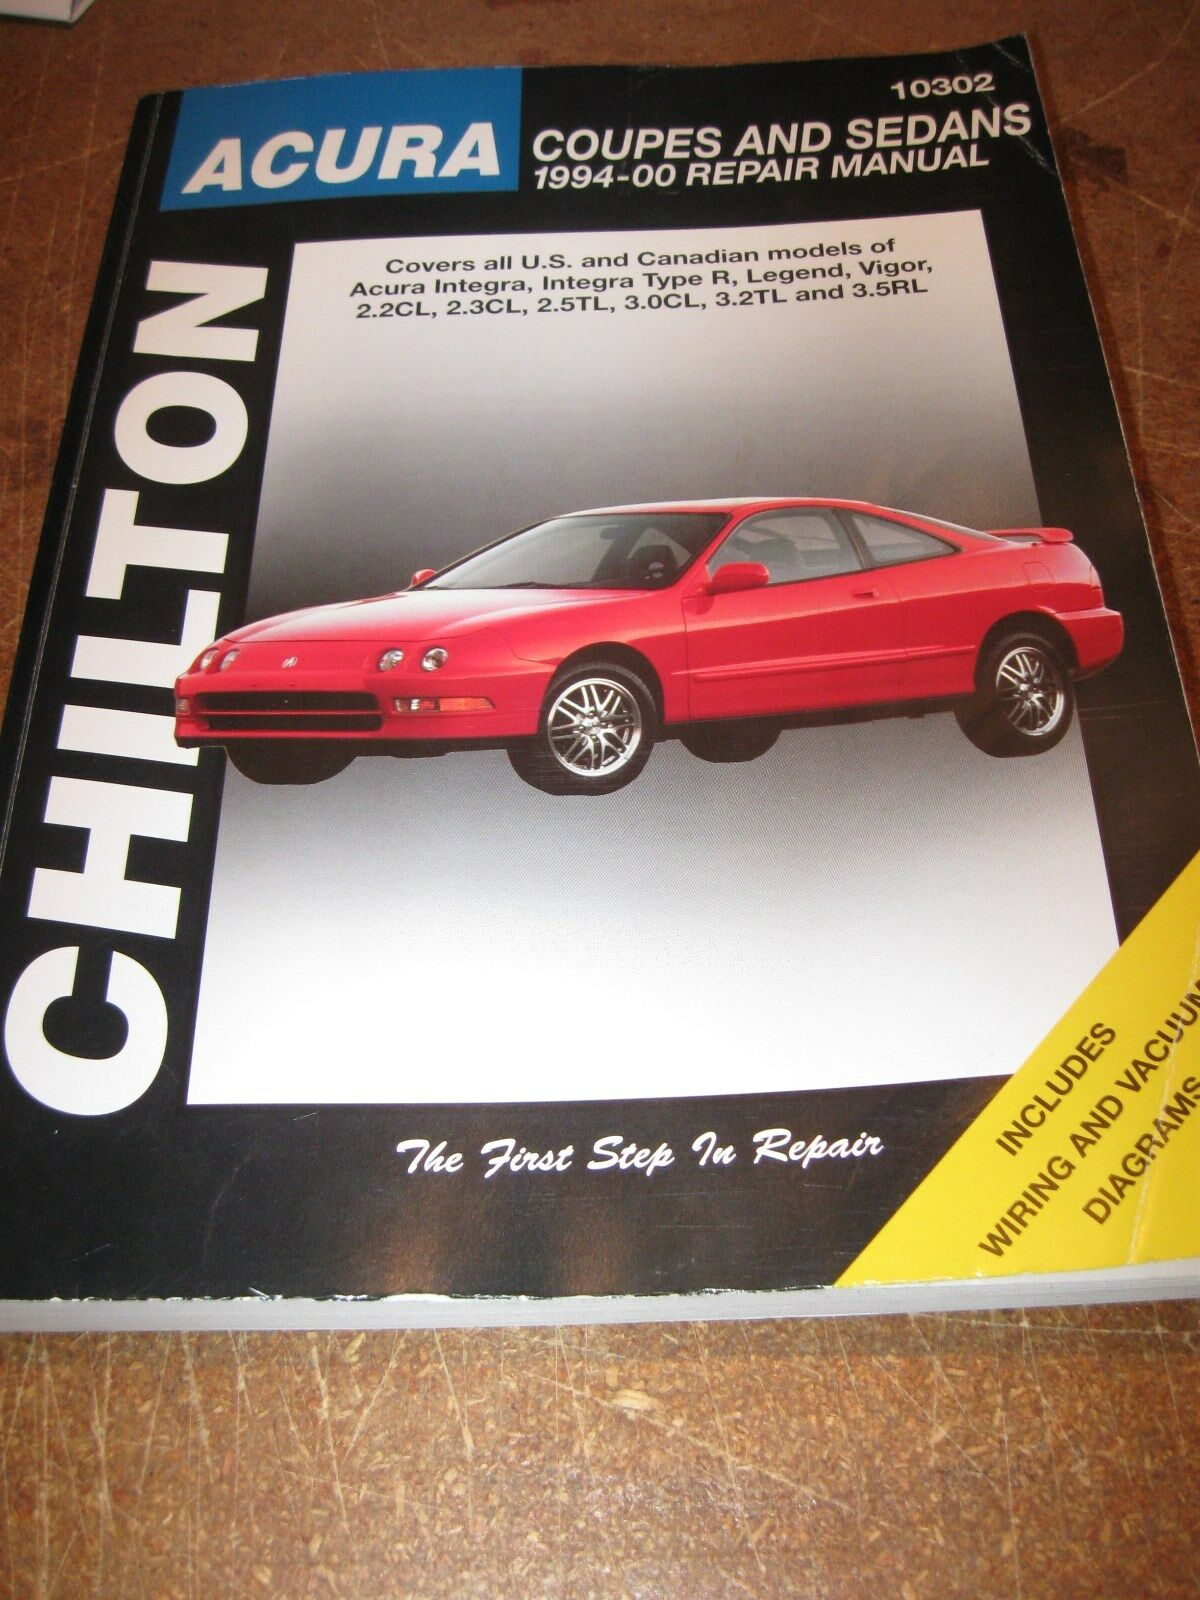 hight resolution of chilton acura coupes sedans 1994 2000 repair manual 10302 integra legend vigor for sale online ebay